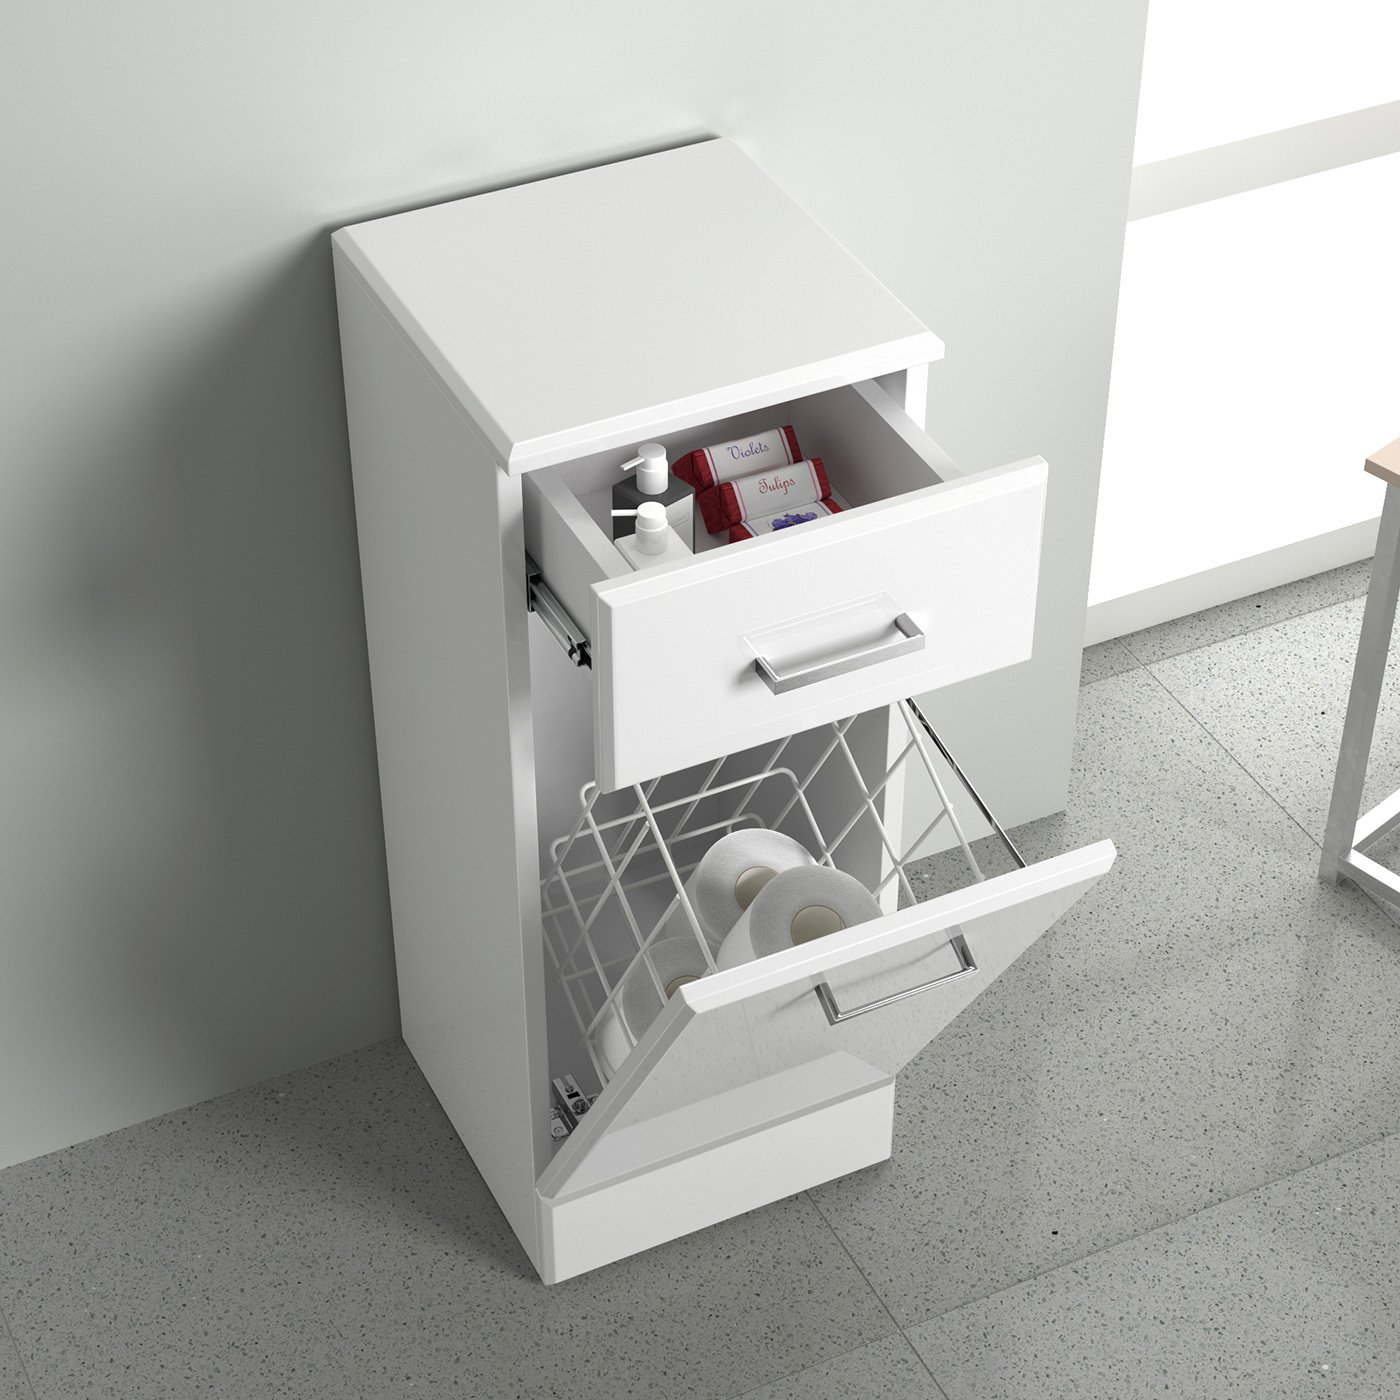 300mm White Gloss Bathroom Laundry Basket Cupboard Drawer Storage Furniture Unit iBathUK